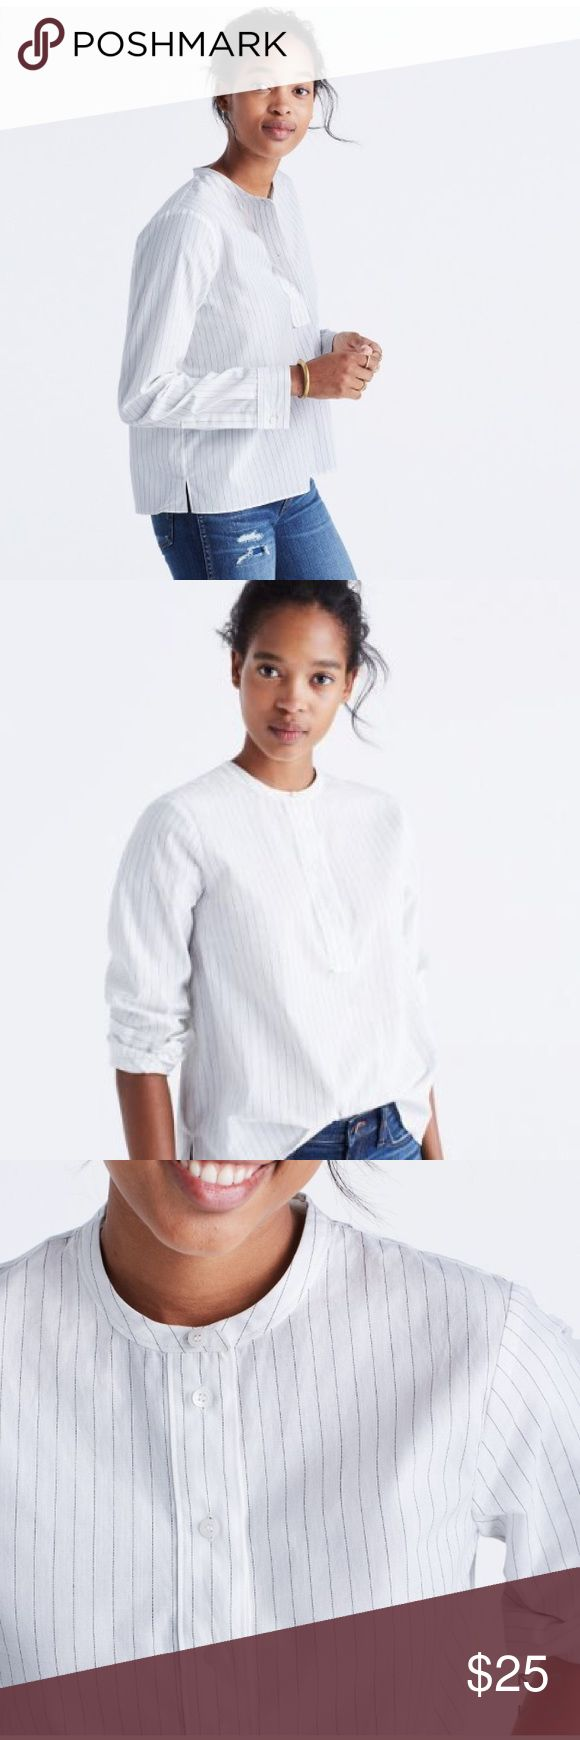 Madewell striped popover shirt, xxs Crisp and clean, this striped popover shirt is just a touch cropped to pair with high-rise jeans and skirts.  True to size. Cotton  XXS Madewell Tops Blouses